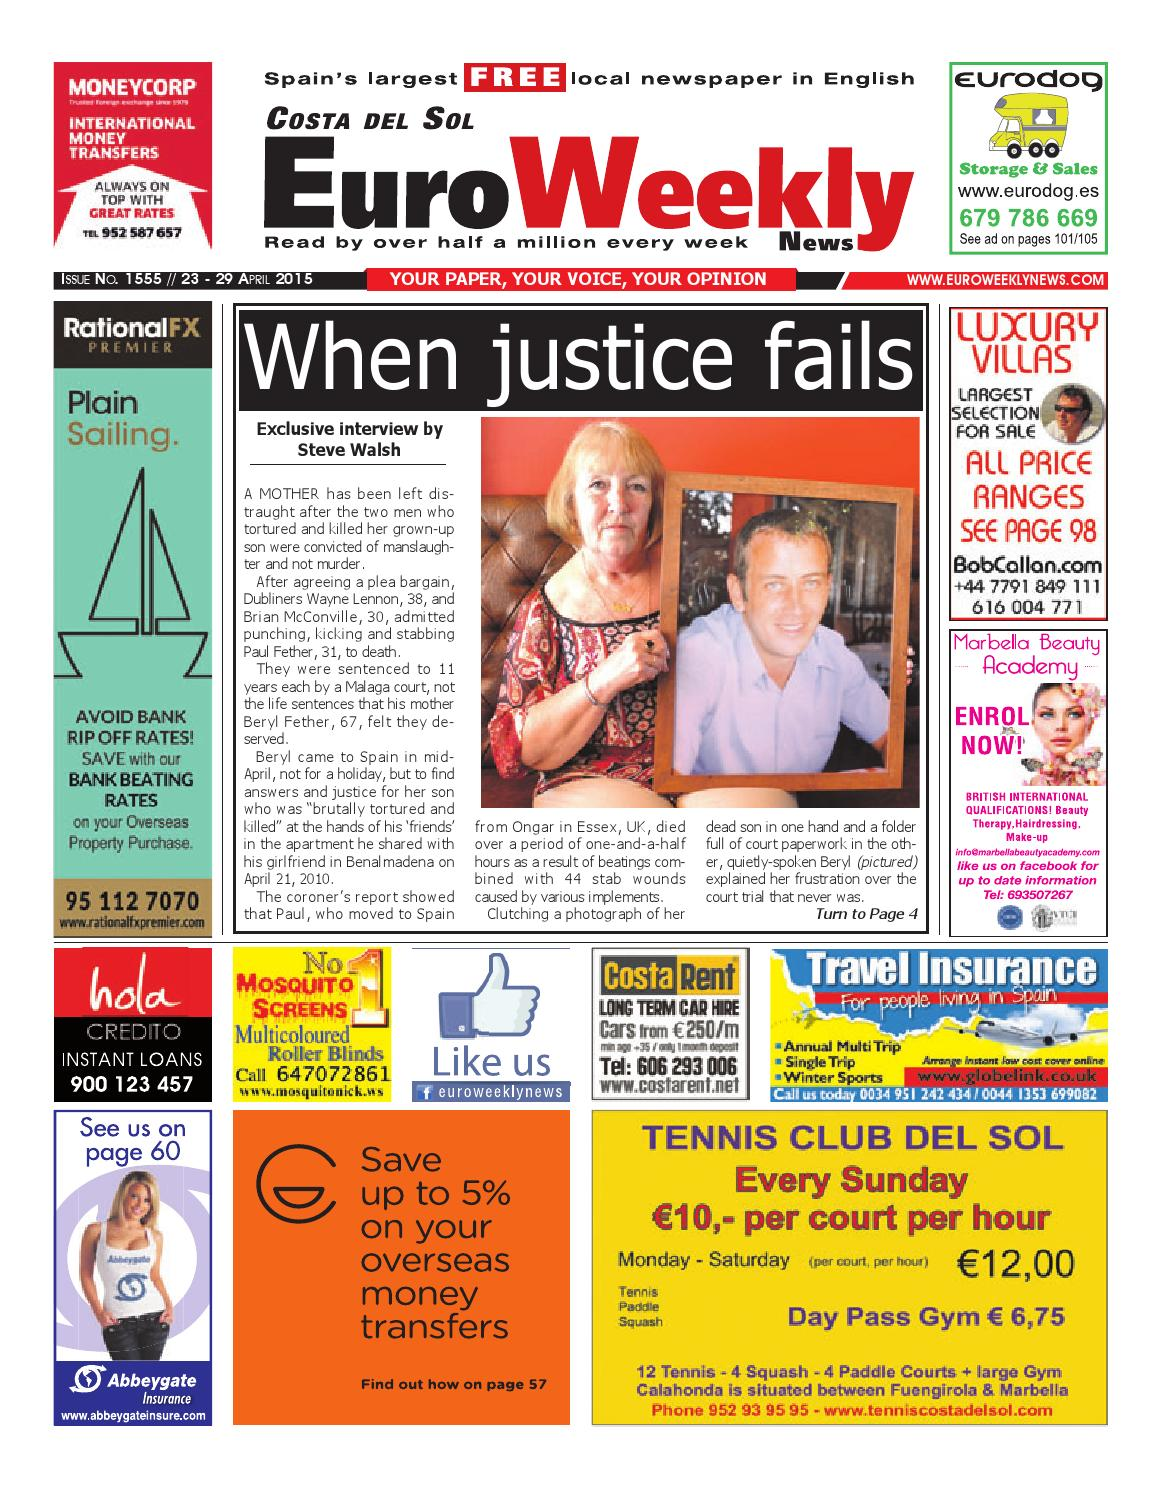 Euro weekly news costa del sol 23 29 april 2015 issue 1555 by euro weekly news costa del sol 23 29 april 2015 issue 1555 by euro weekly news media sa issuu fandeluxe Gallery